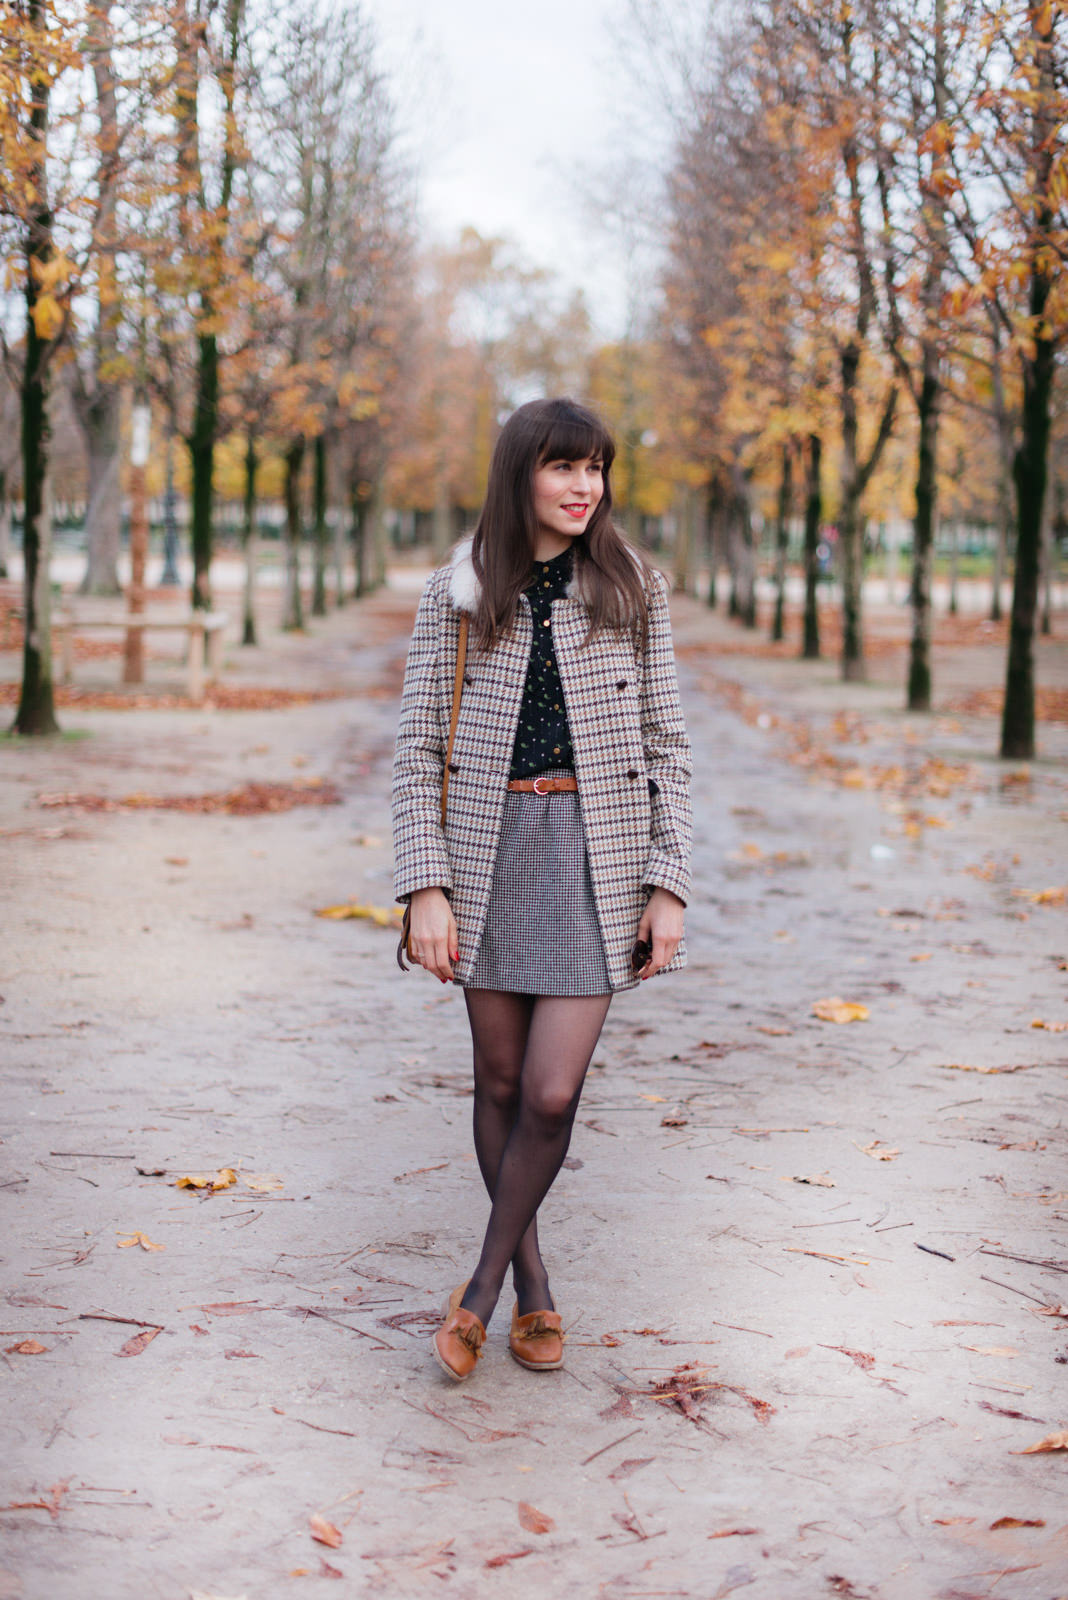 Blog-Mode-And-The-City-Looks-Les-Tuileries-A-Automne